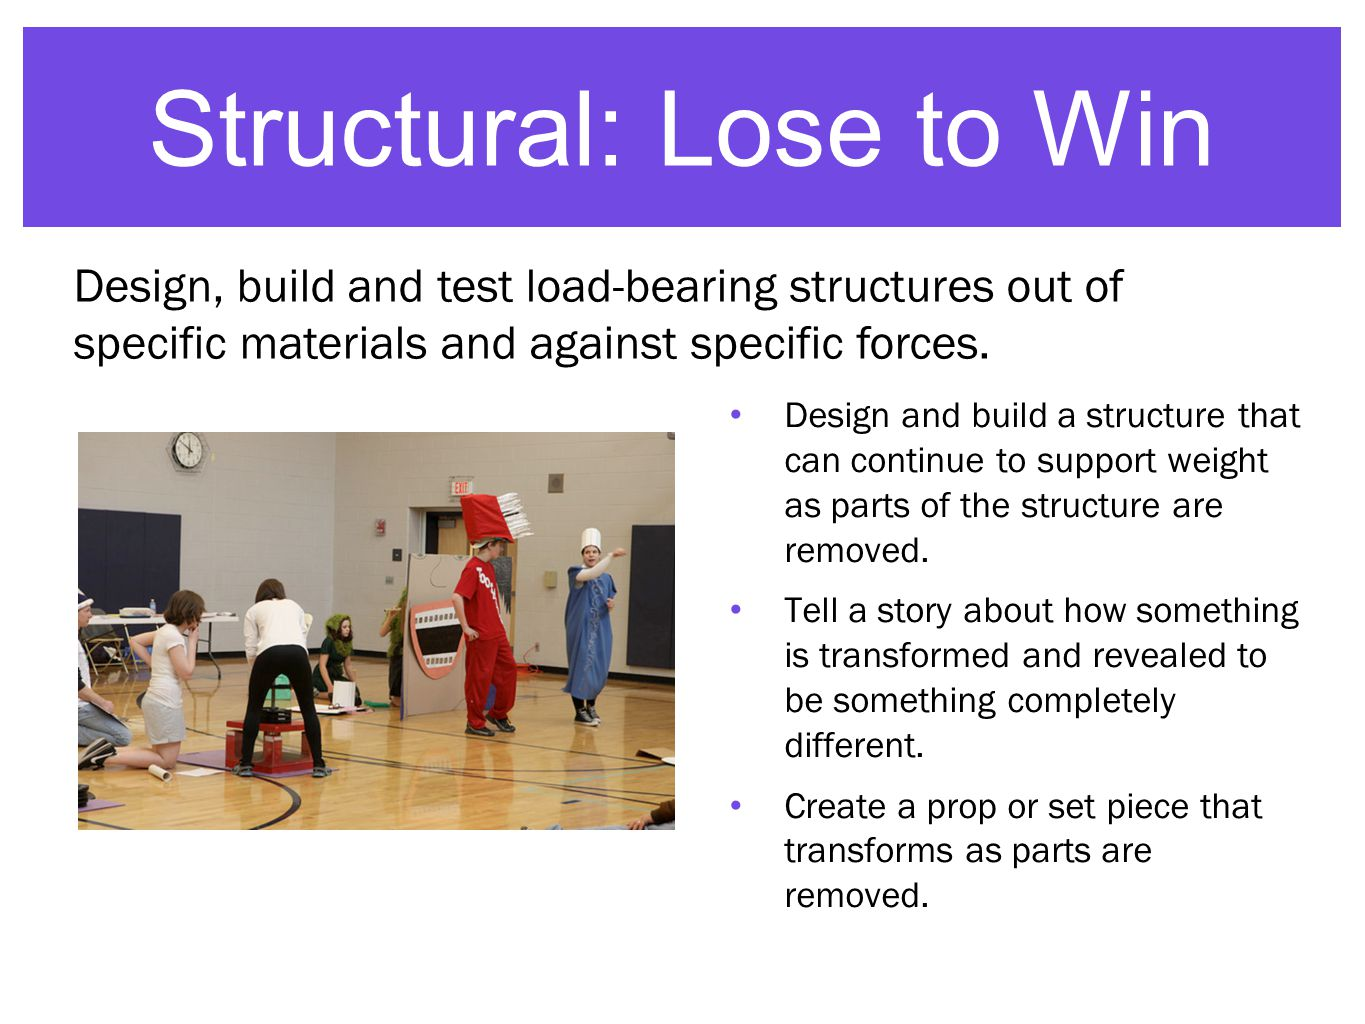 Structural: Lose to Win Design and build a structure that can continue to support weight as parts of the structure are removed.